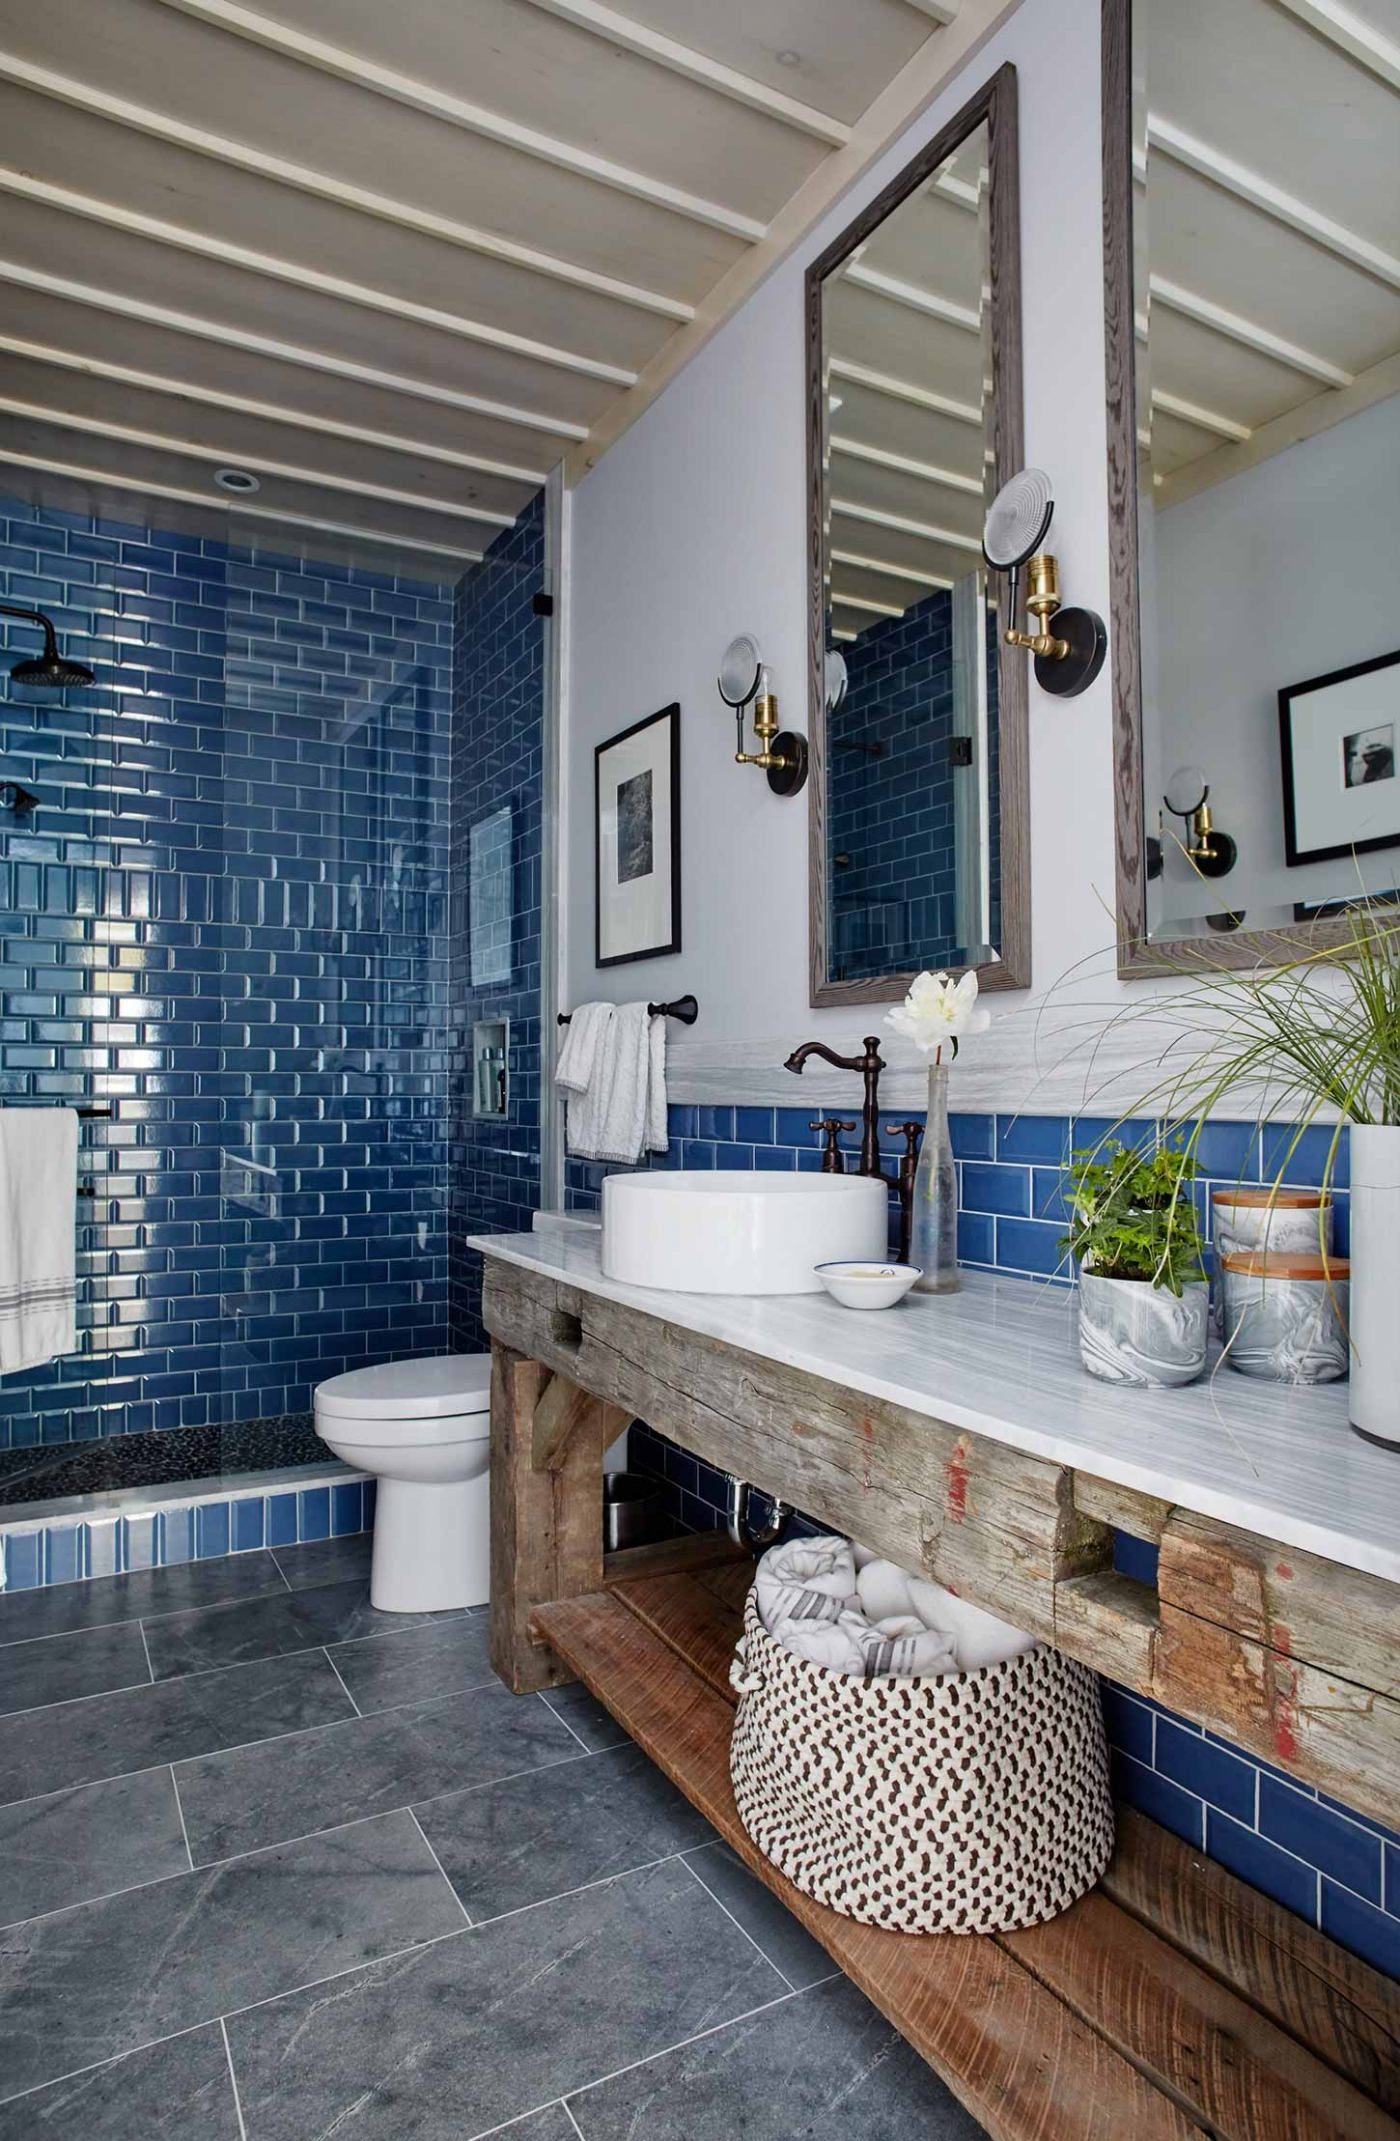 Guest House Room Design: Shop The Room! Sarah Richardson Guest Bathroom {Rustic